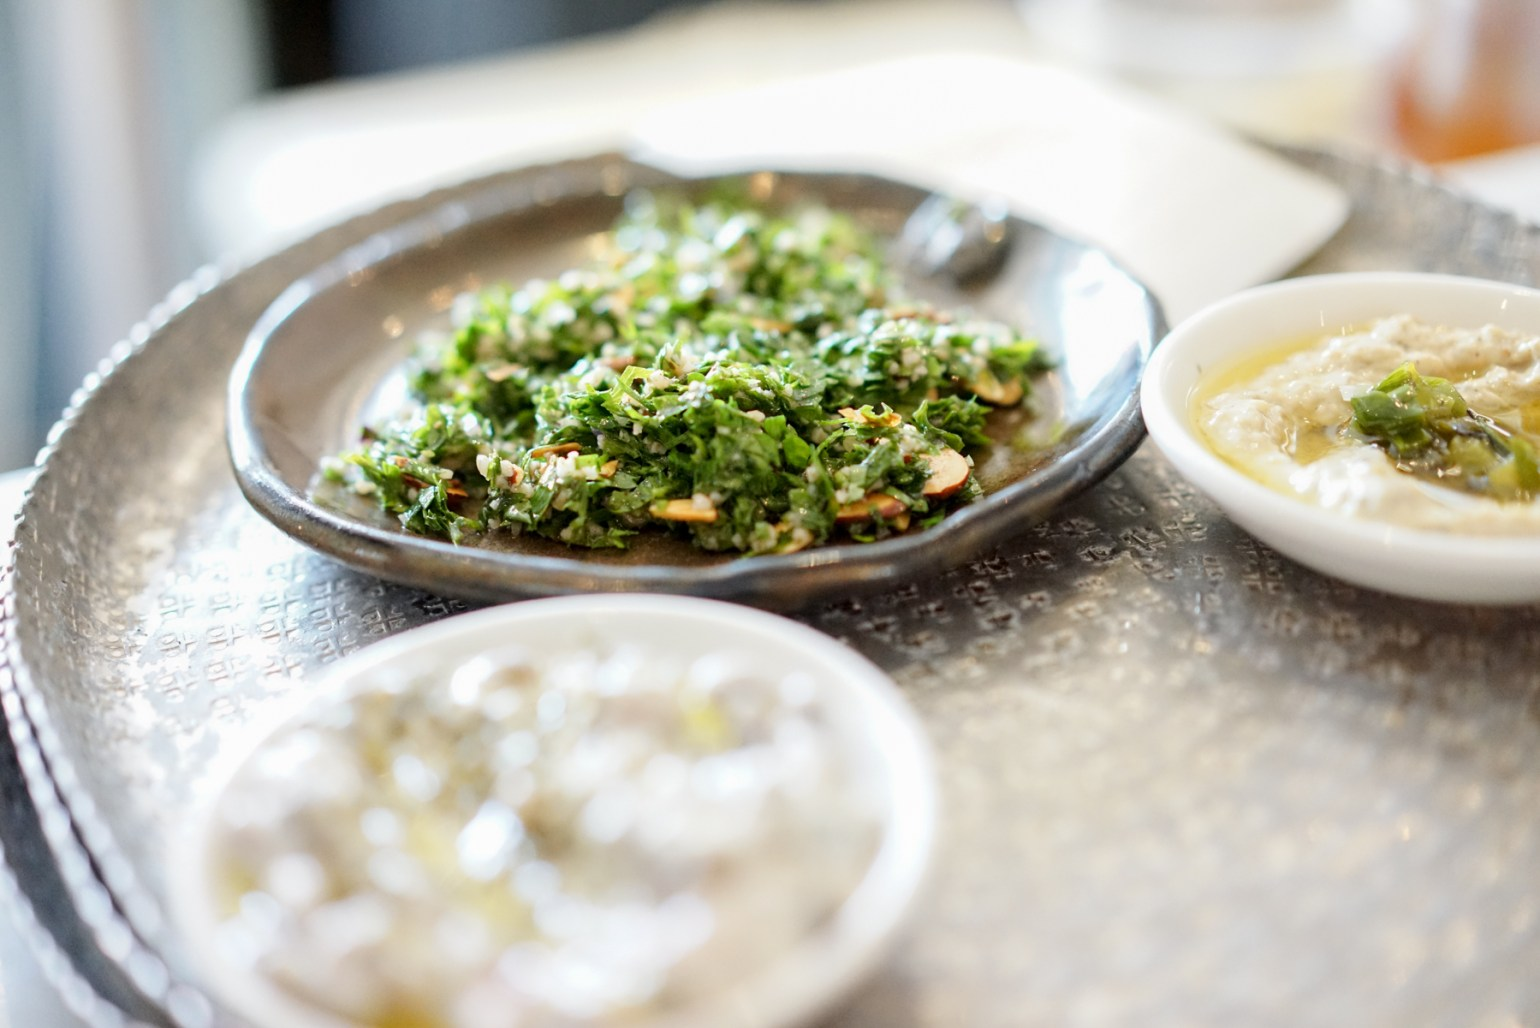 Spreads and dips to pair with pita. (Photo: Paul Broussard)